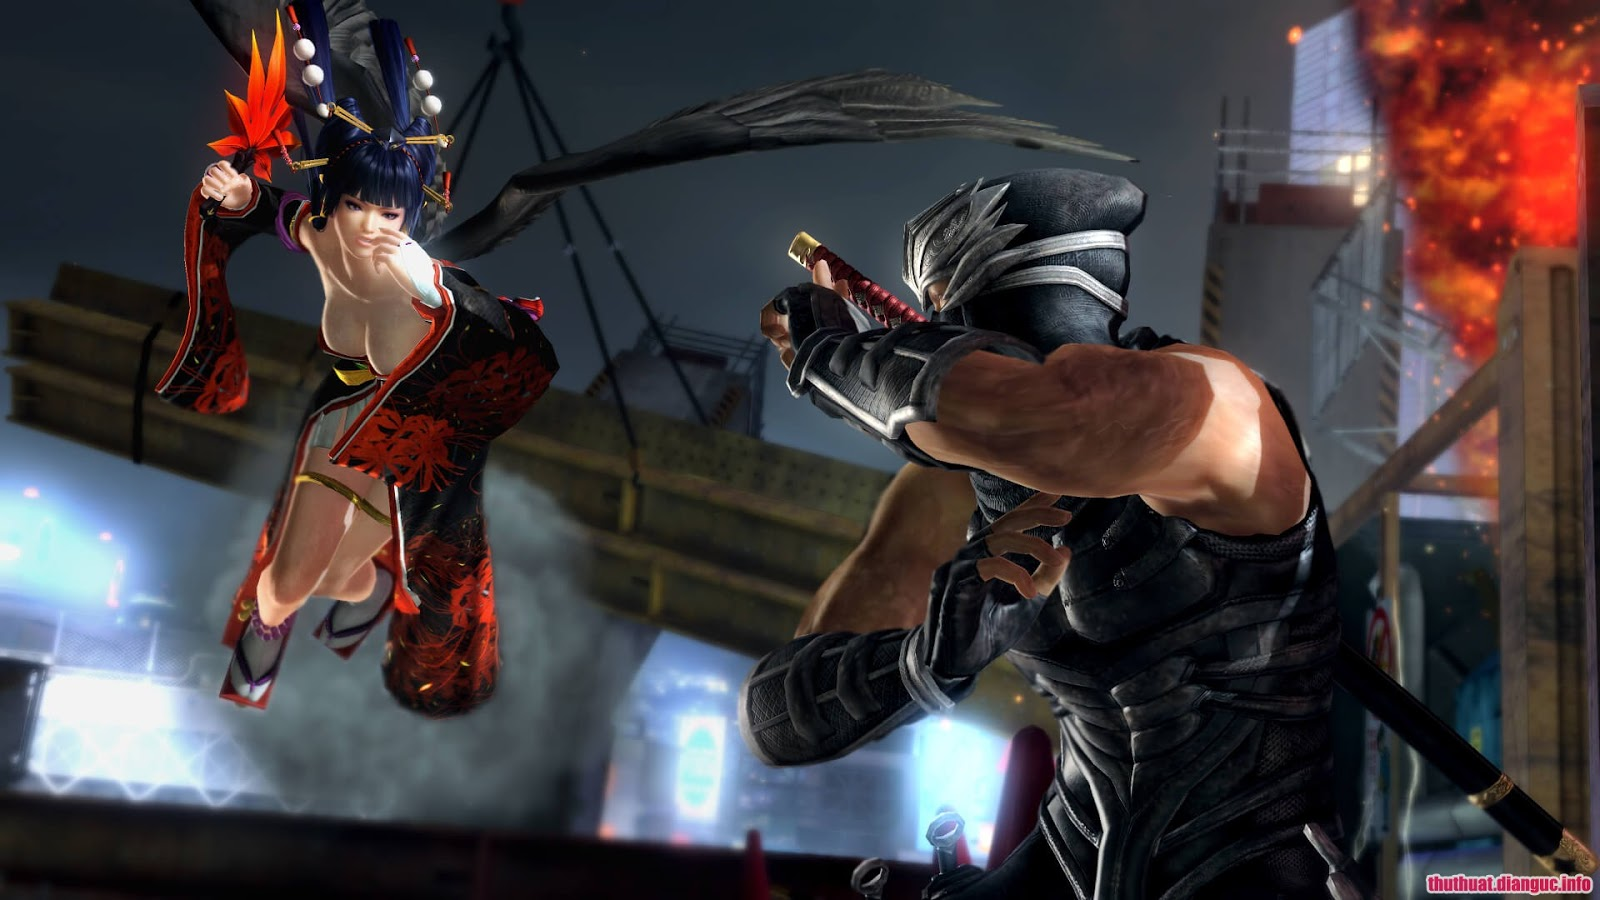 Download Game Dead or Alive 5: Last Round Full Crack, Game Dead or Alive 5: Last Round, Game Dead or Alive 5: Last Round free download, Game Dead or Alive 5: Last Round full key, Dead or Alive 5 Last Round miễn phí